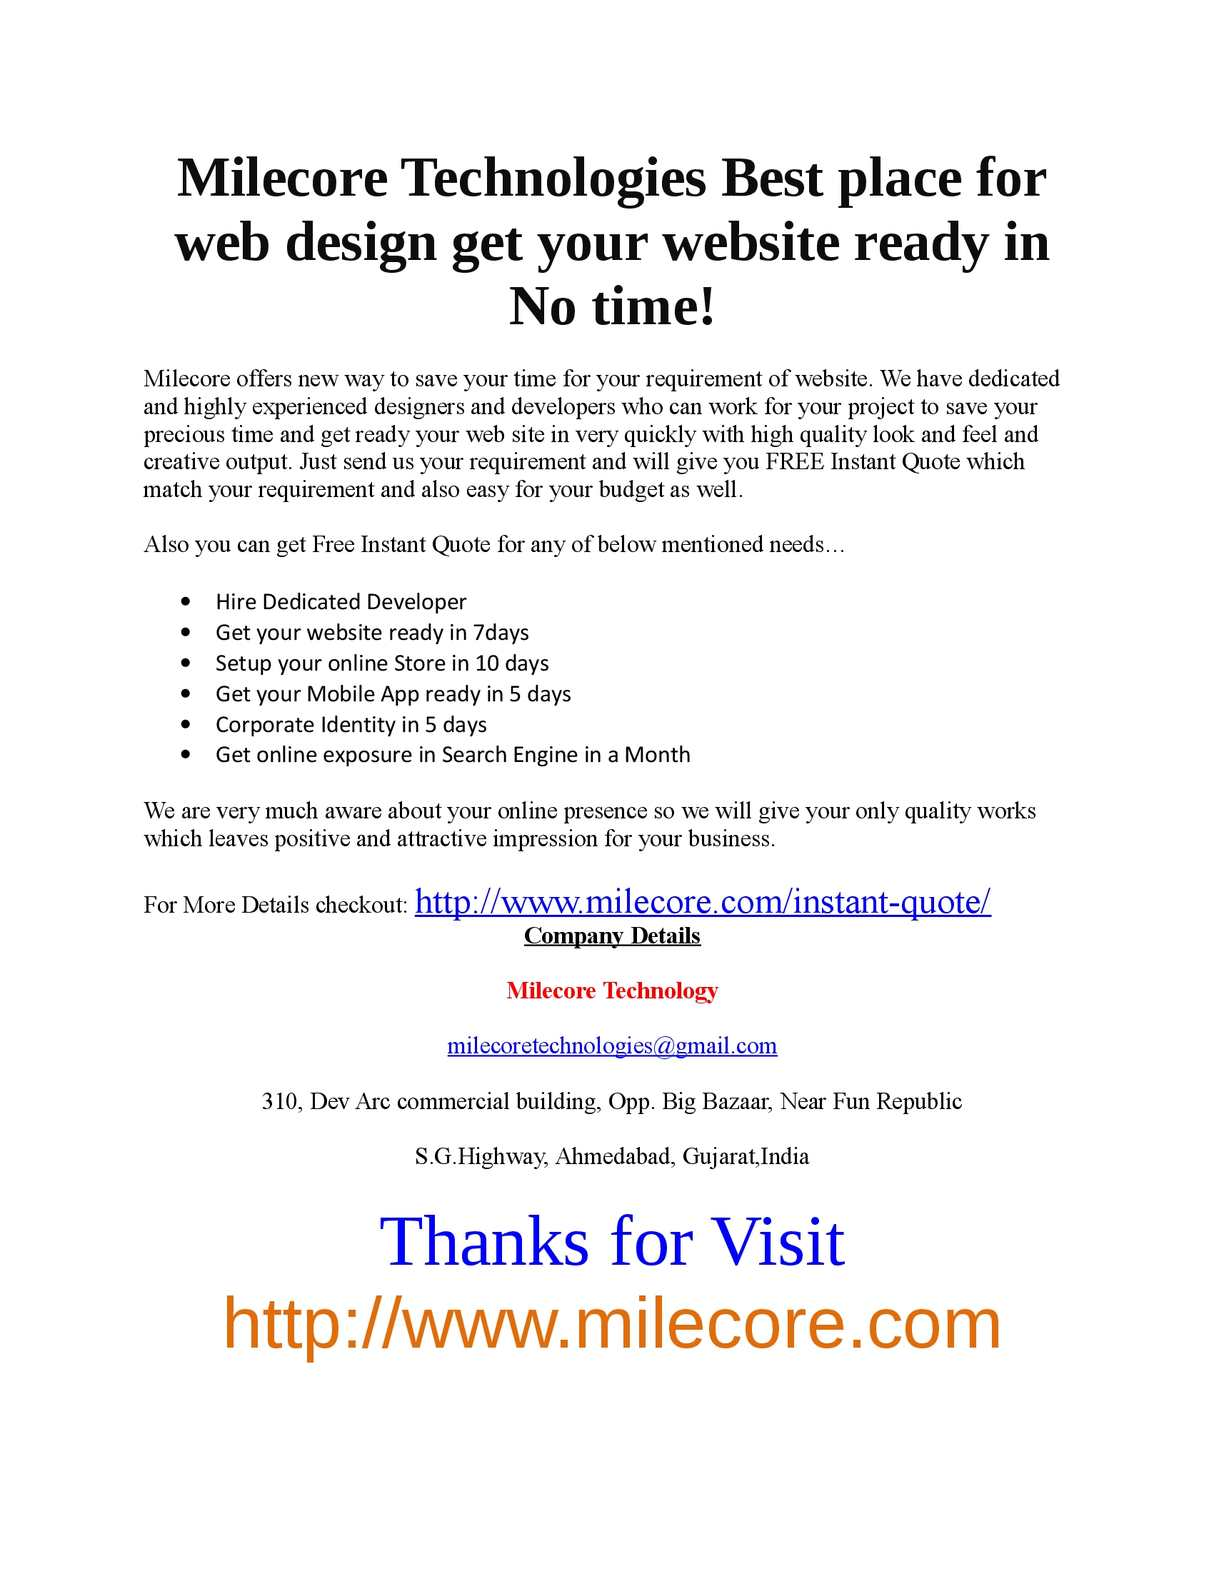 Calameo Milecore Technologies Best Place For Web Design Get Your Website Ready In No Time